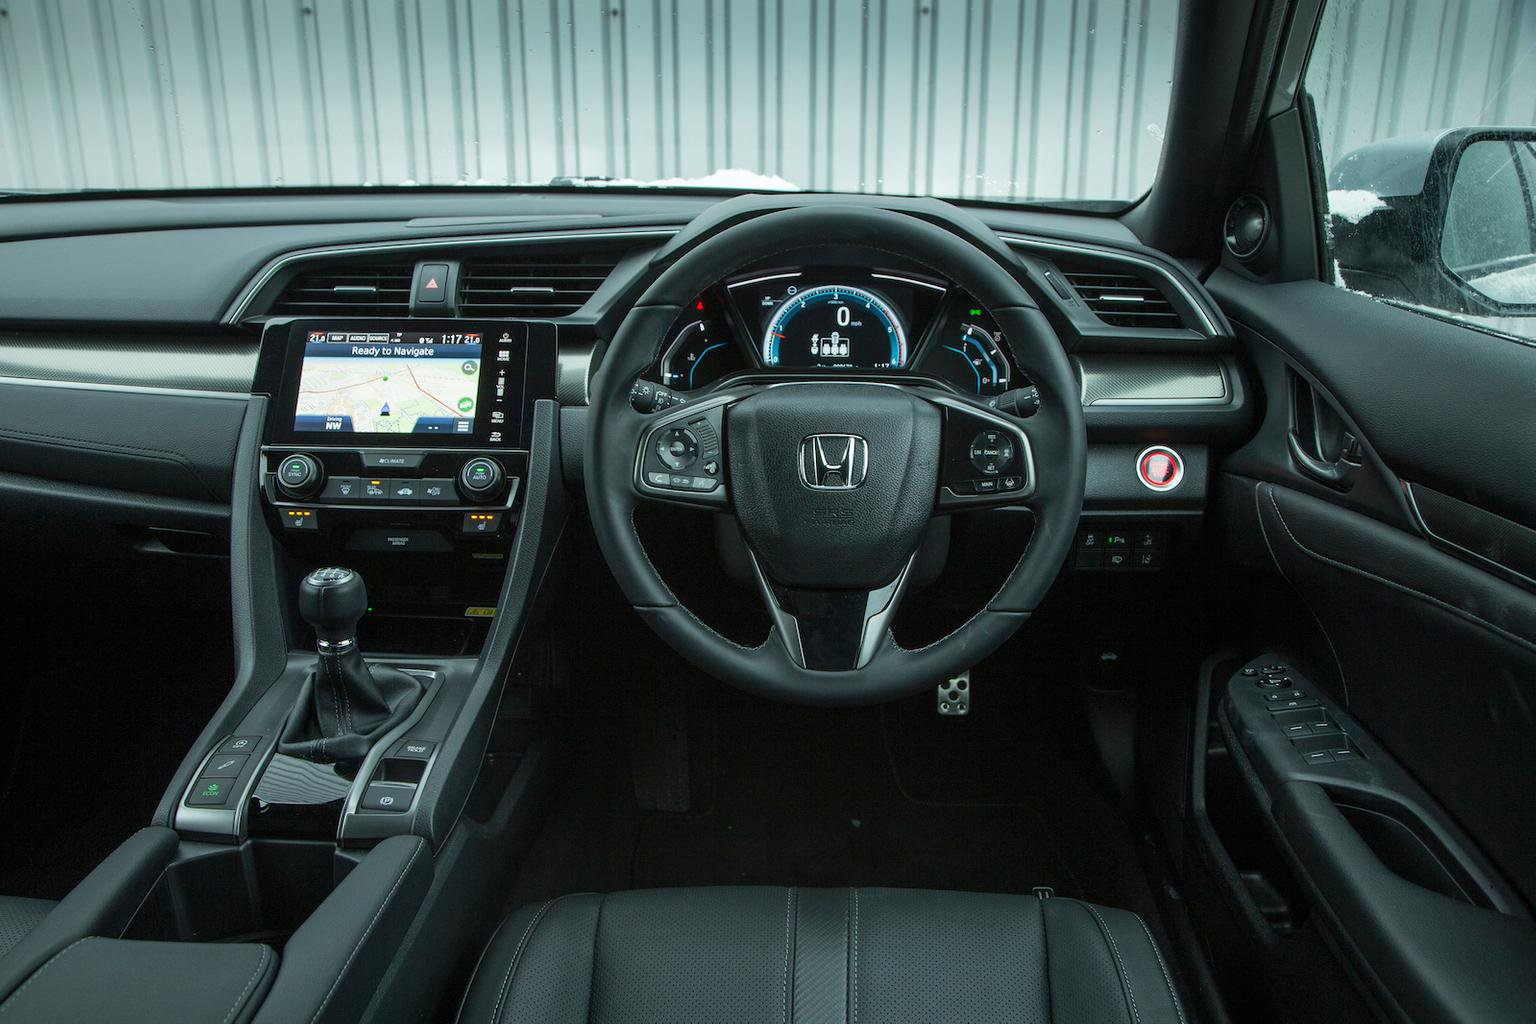 2018 Honda Civic 1.6 i-DTEC review - price, specs and release date